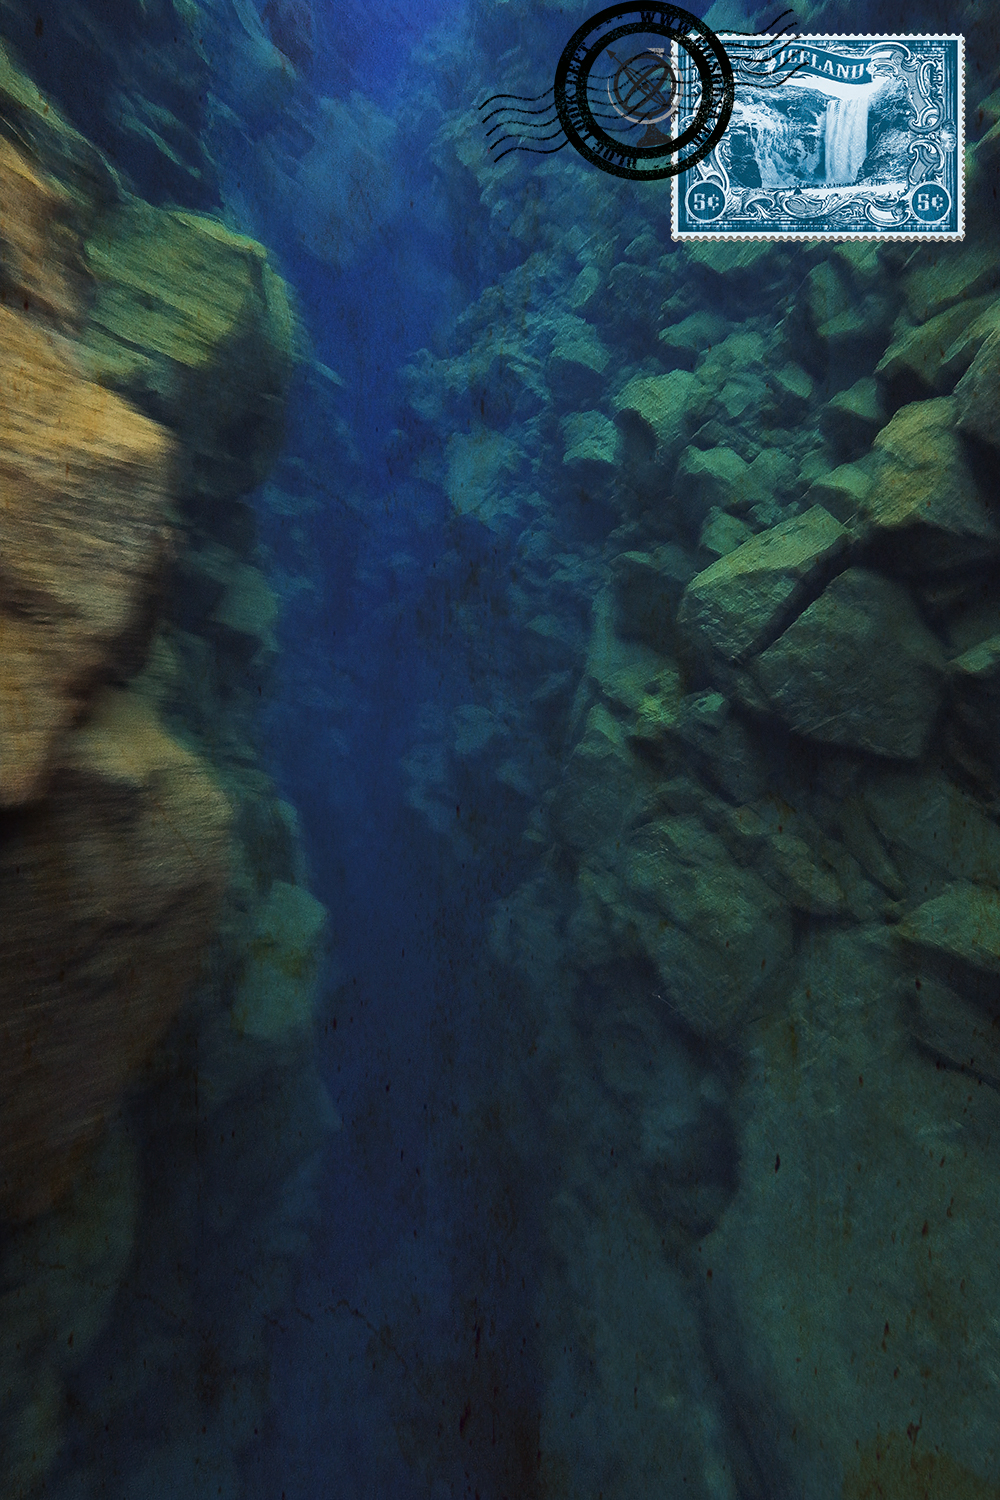 Abyss at Silfra Fissure